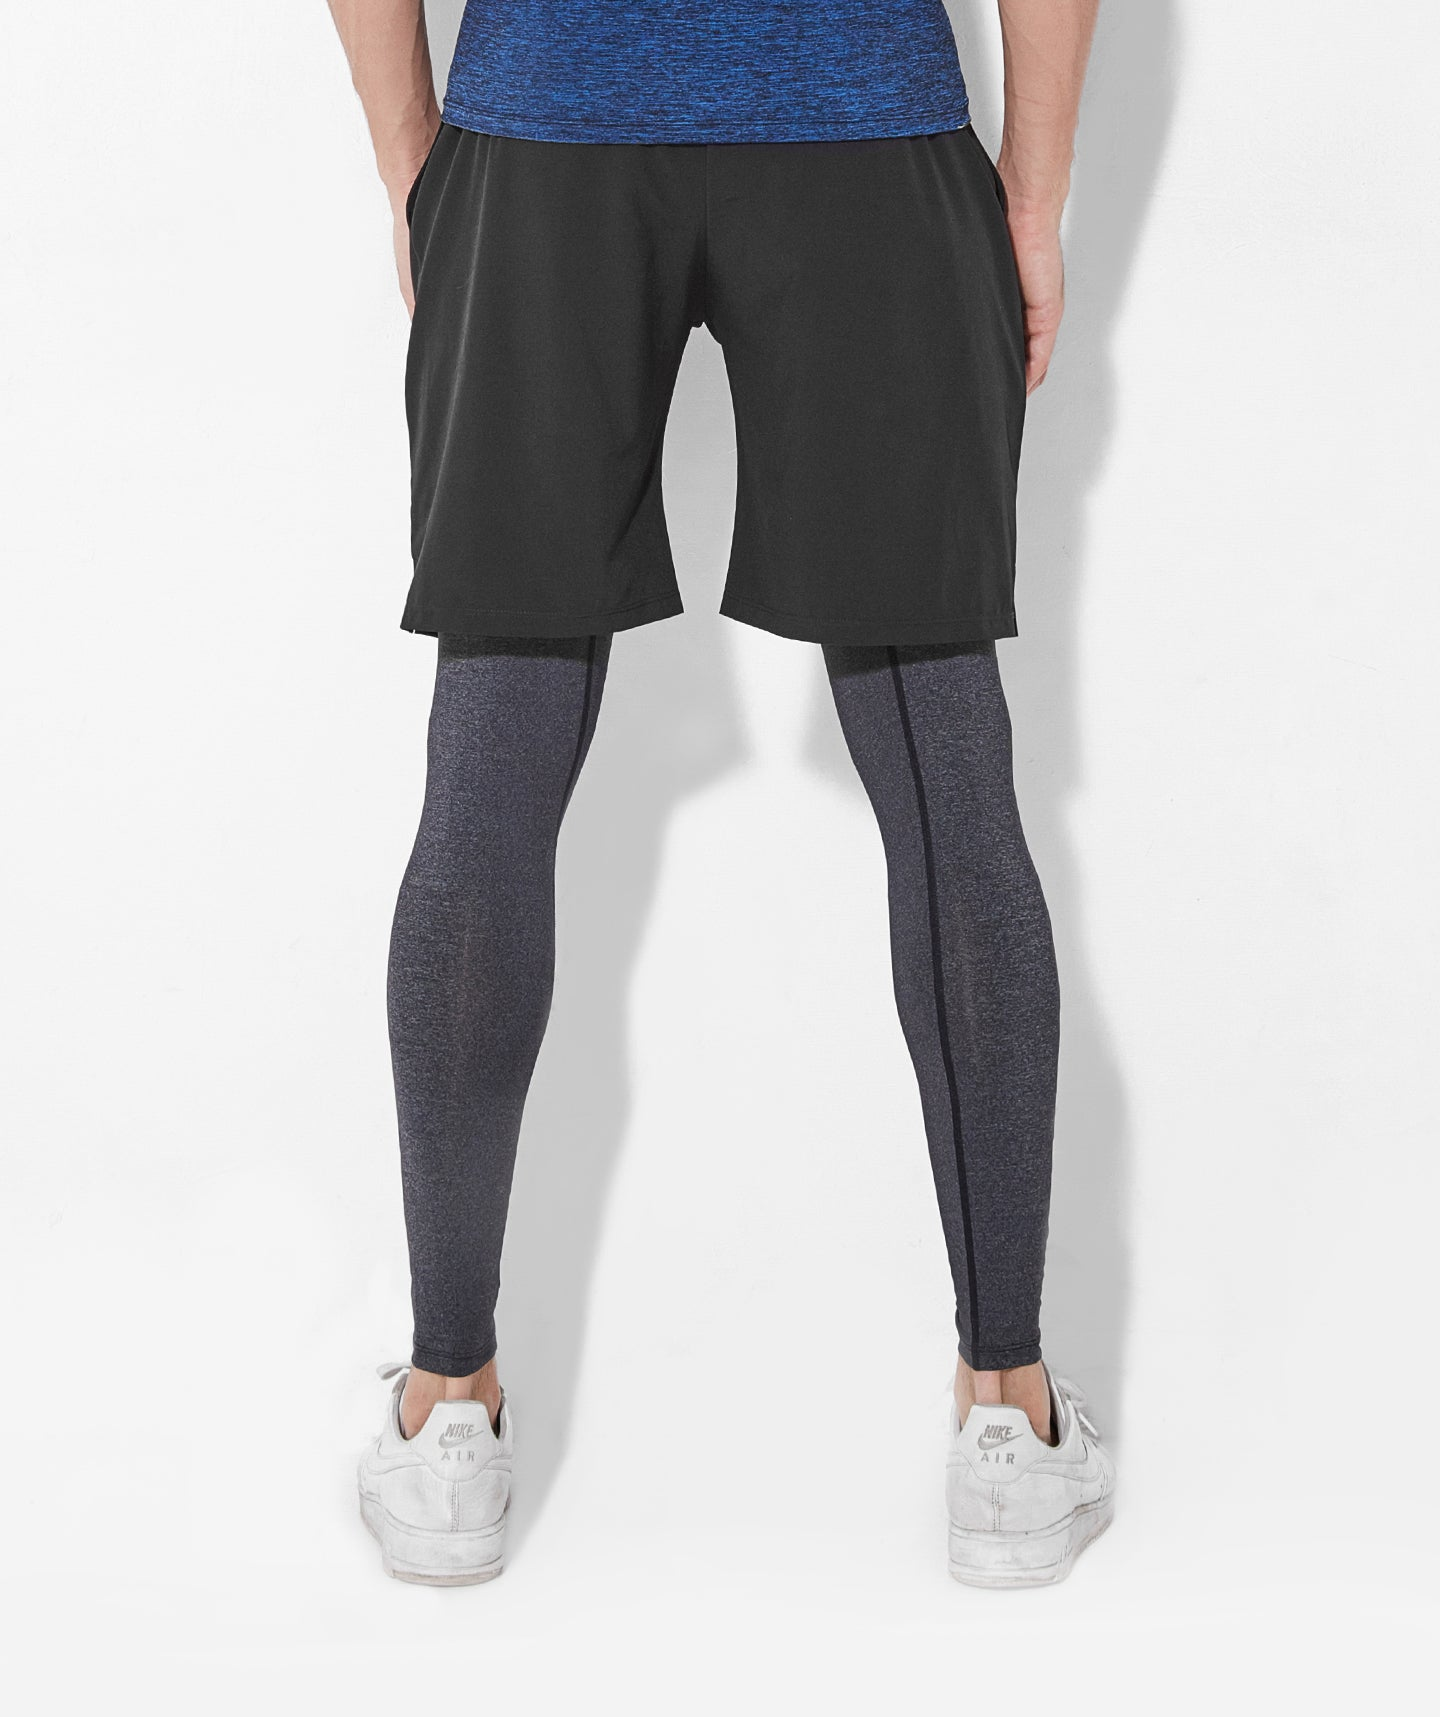 Focus Rapid Shorts Leggings Combo  - Black